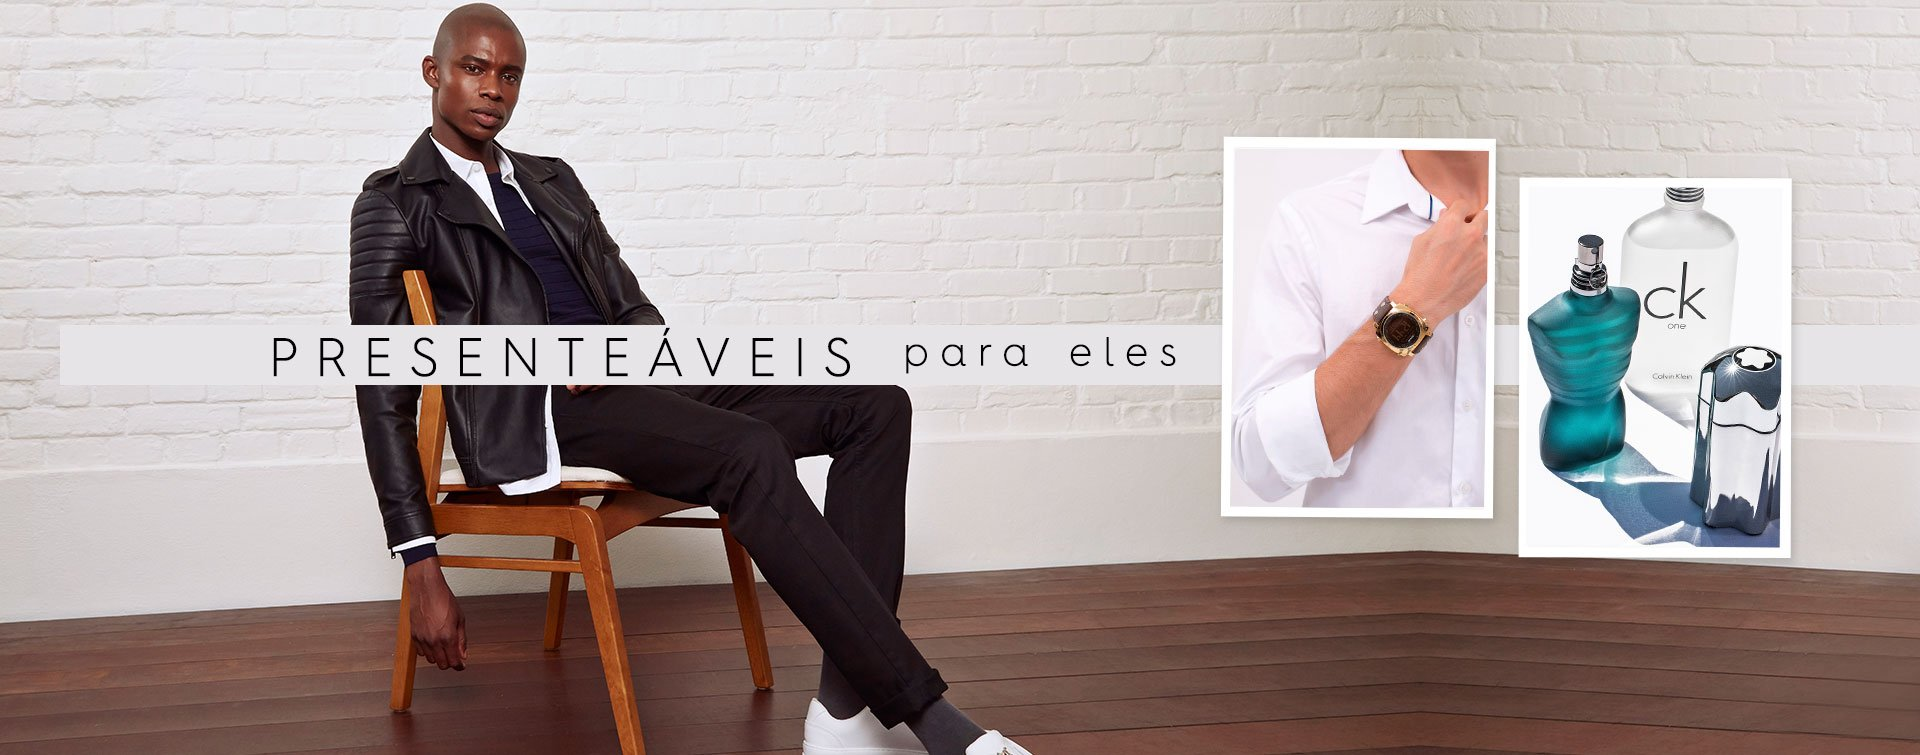 20190715 Banner Home Fashion presenteaveis P01 3Cliques deskx